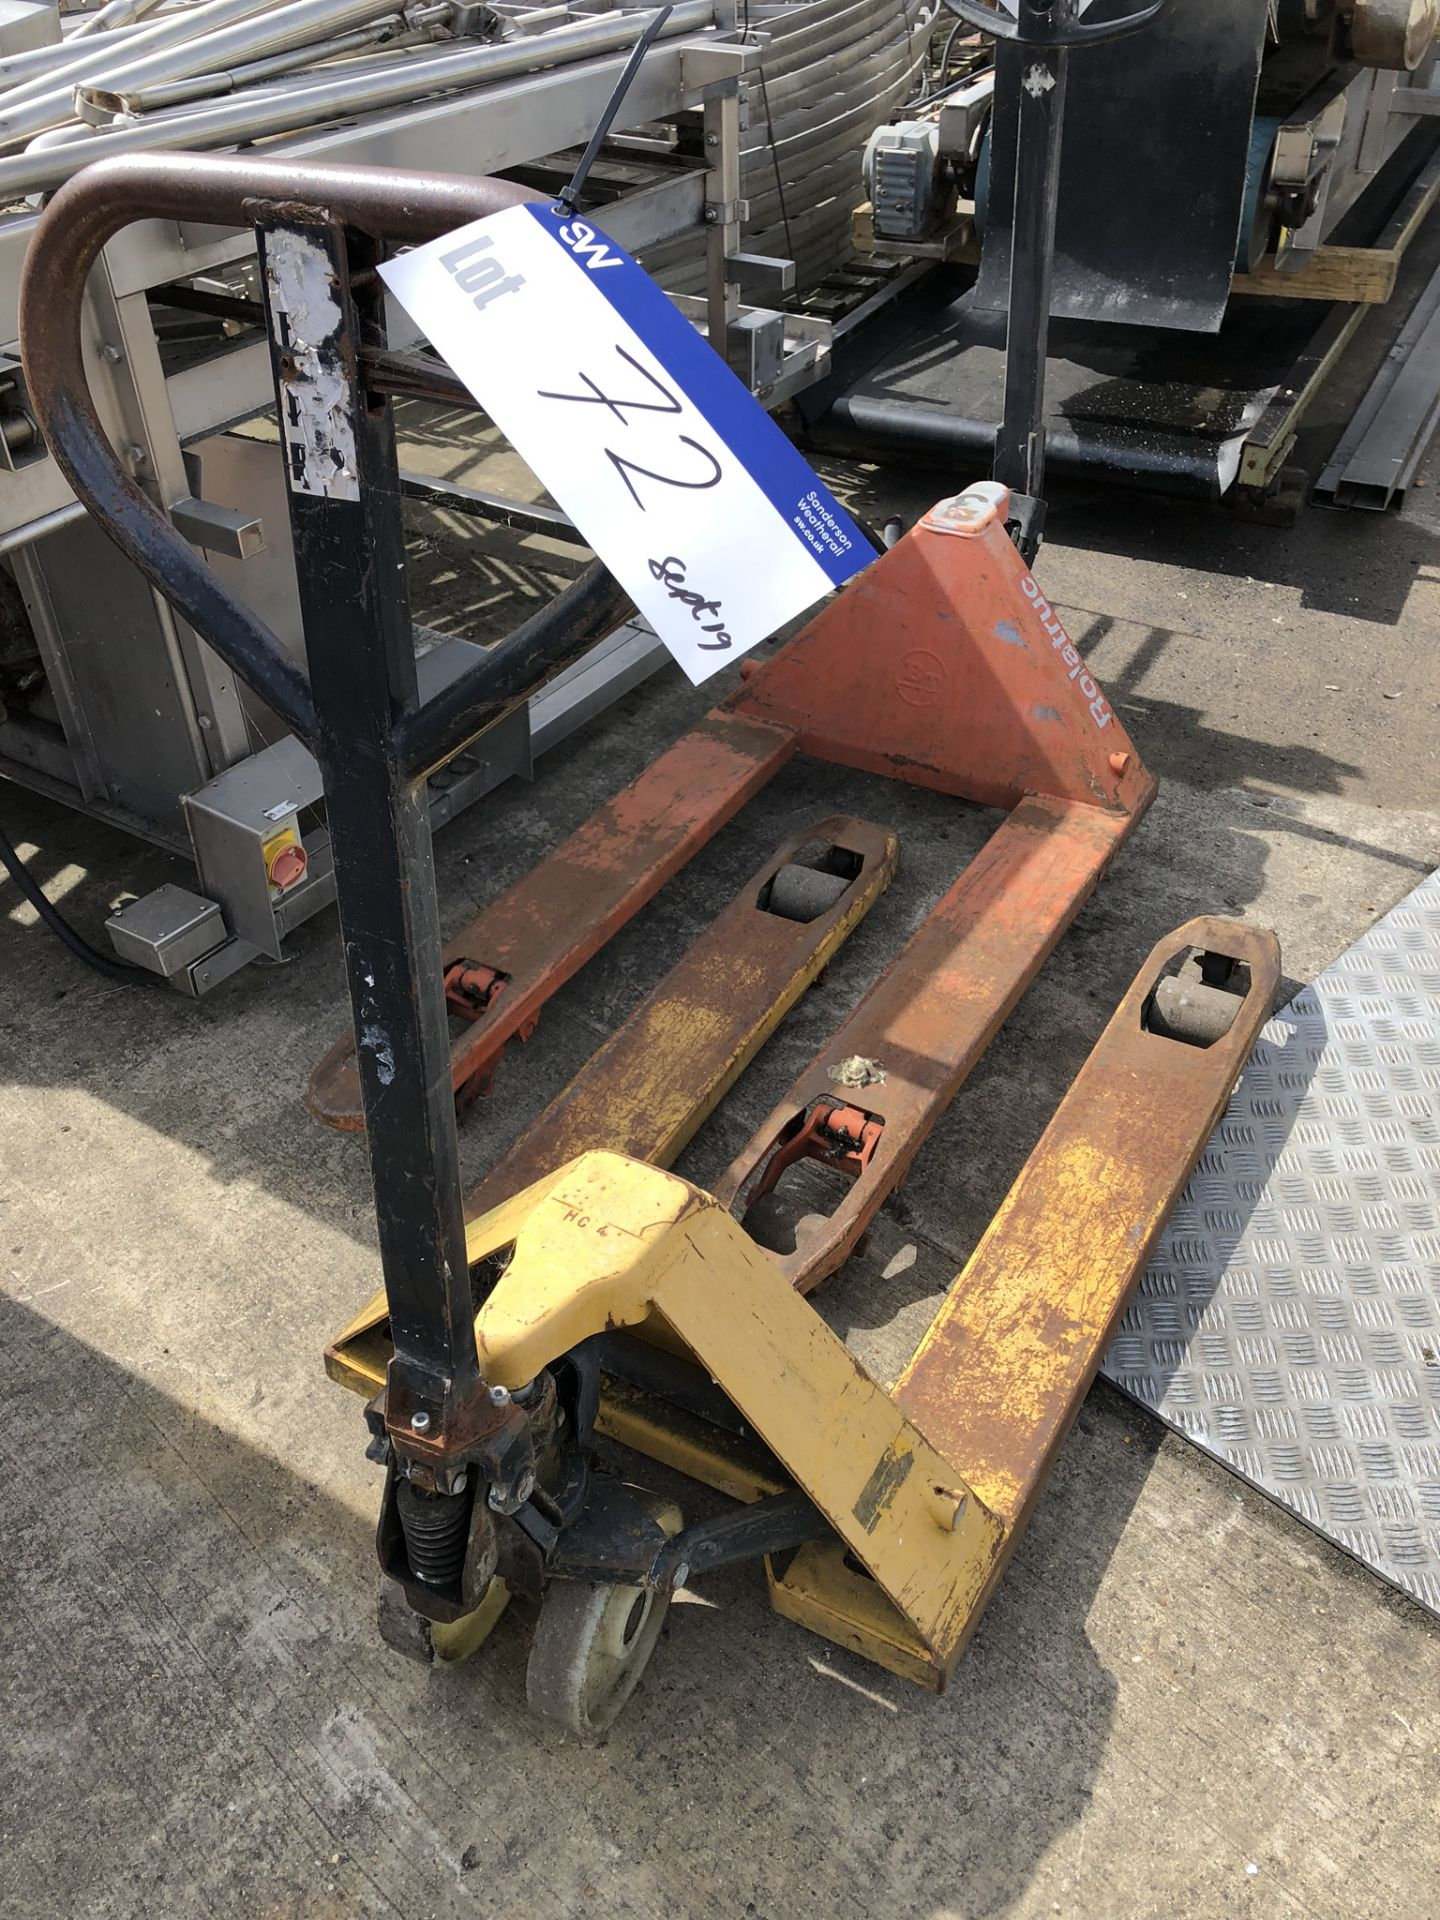 Lot 72 - Hand Hydraulic Pallet Truck, lift out charge - £10